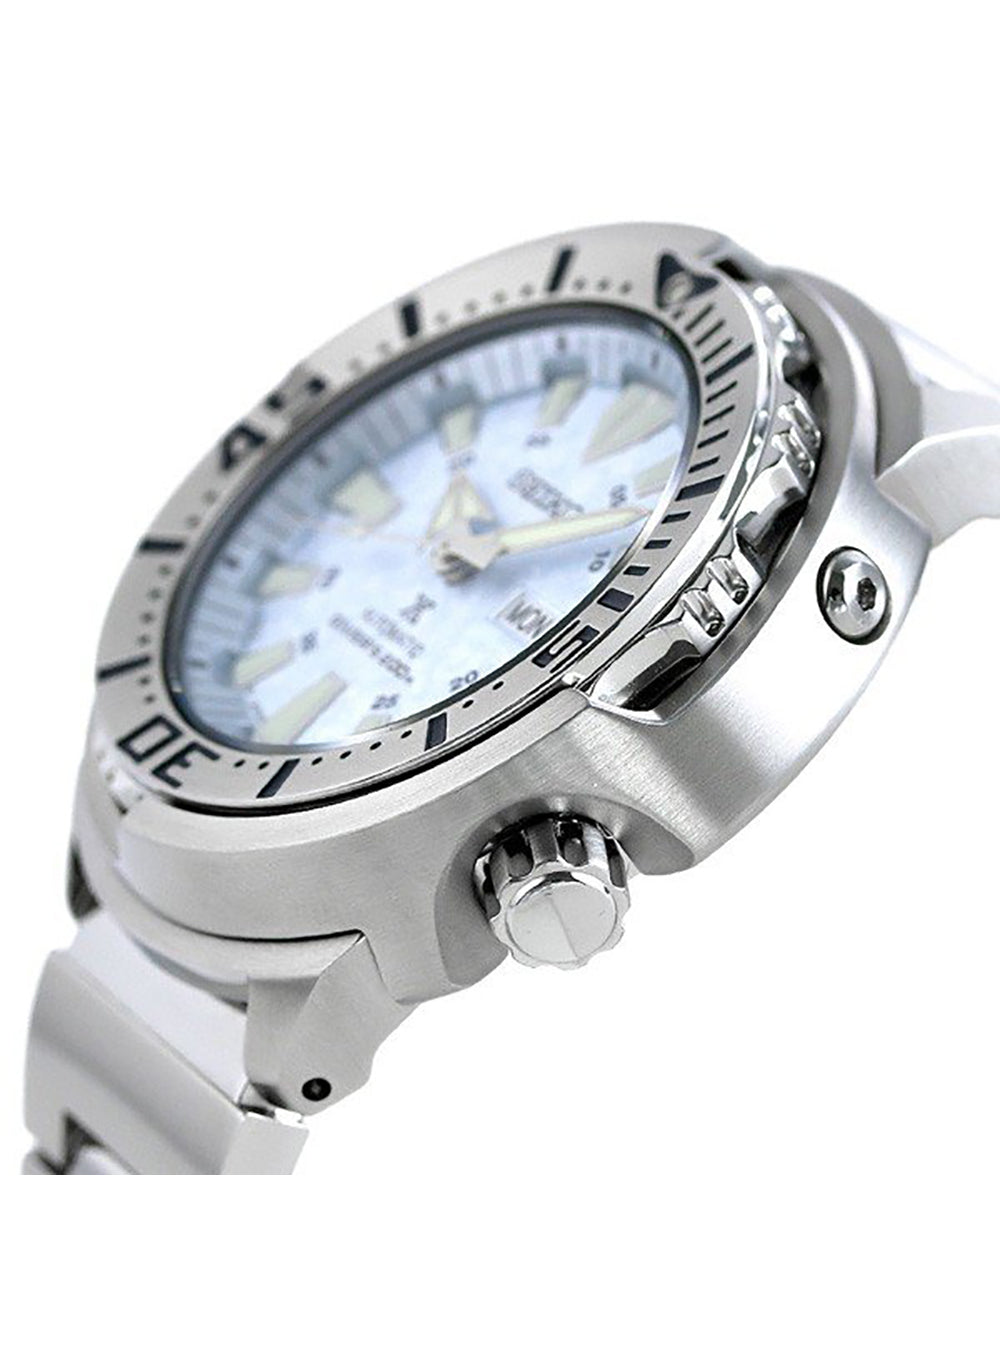 SEIKO PROSPEX DIVER SCUBA BABY TUNA SBDY053 MADE IN JAPAN JDM Only 1 left in stock